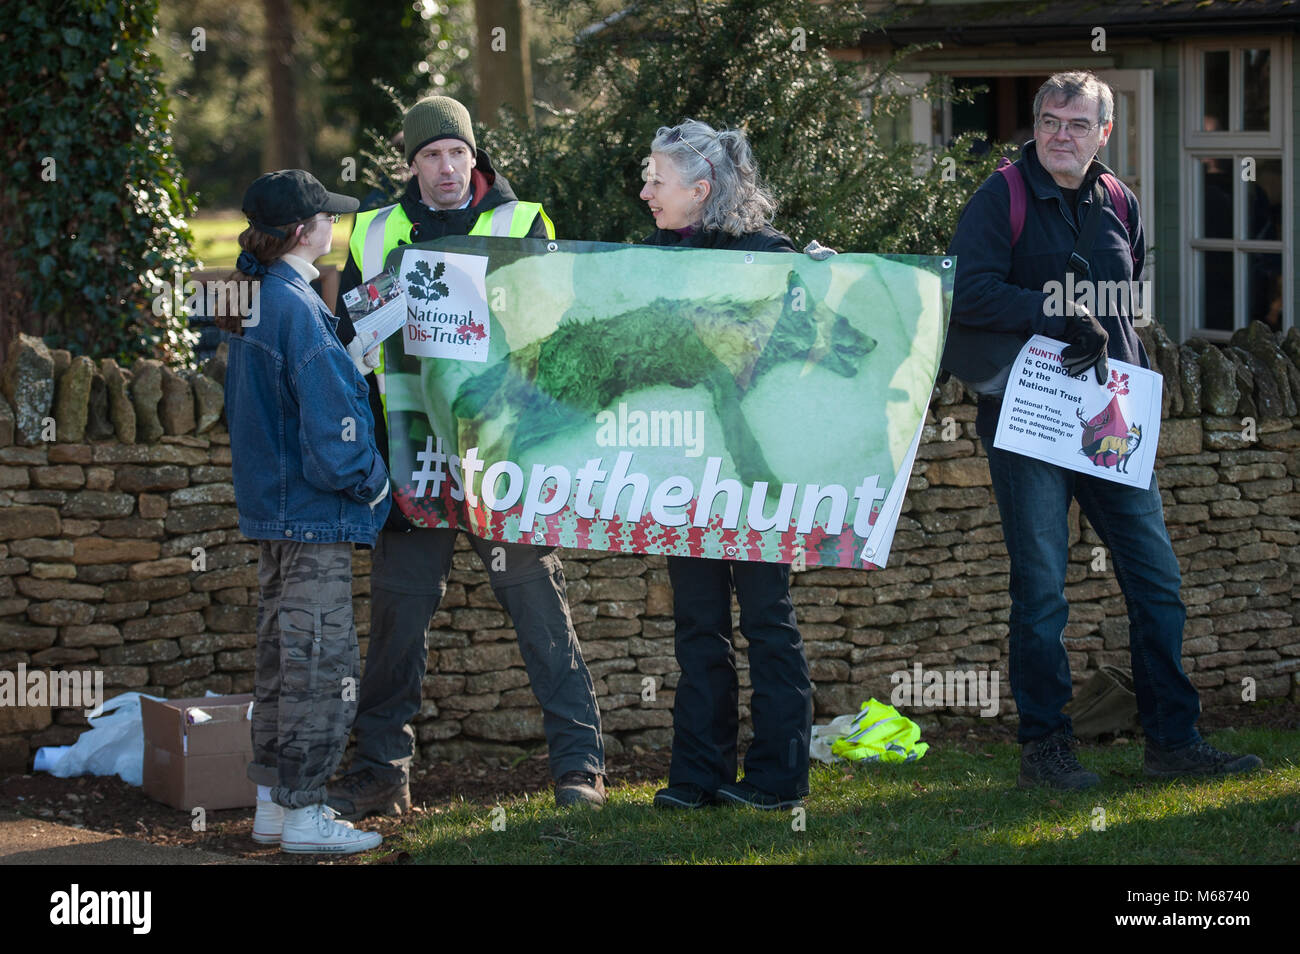 Upton House, Banbury, Oxfordshire, UK. 25th February 2018.  Protesters take part in a demonstration outside Upton - Stock Image